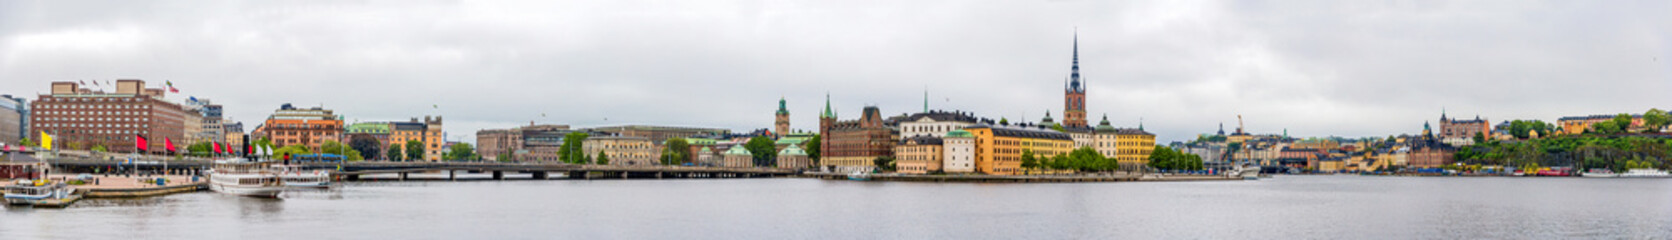 Panorama of Stockholm city center - Sweden